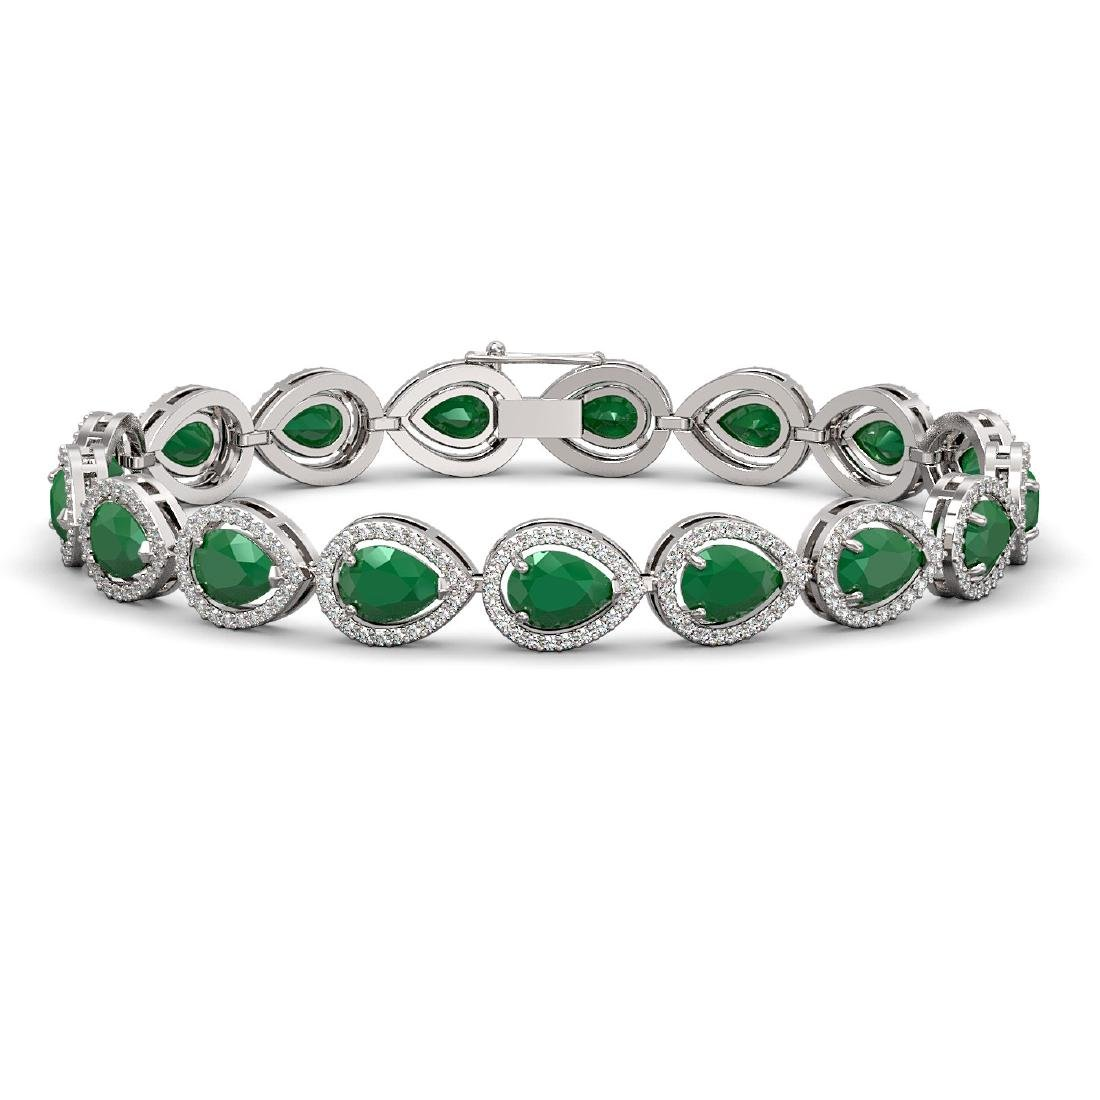 21.69 CTW Emerald & Diamond Halo Bracelet 10K White